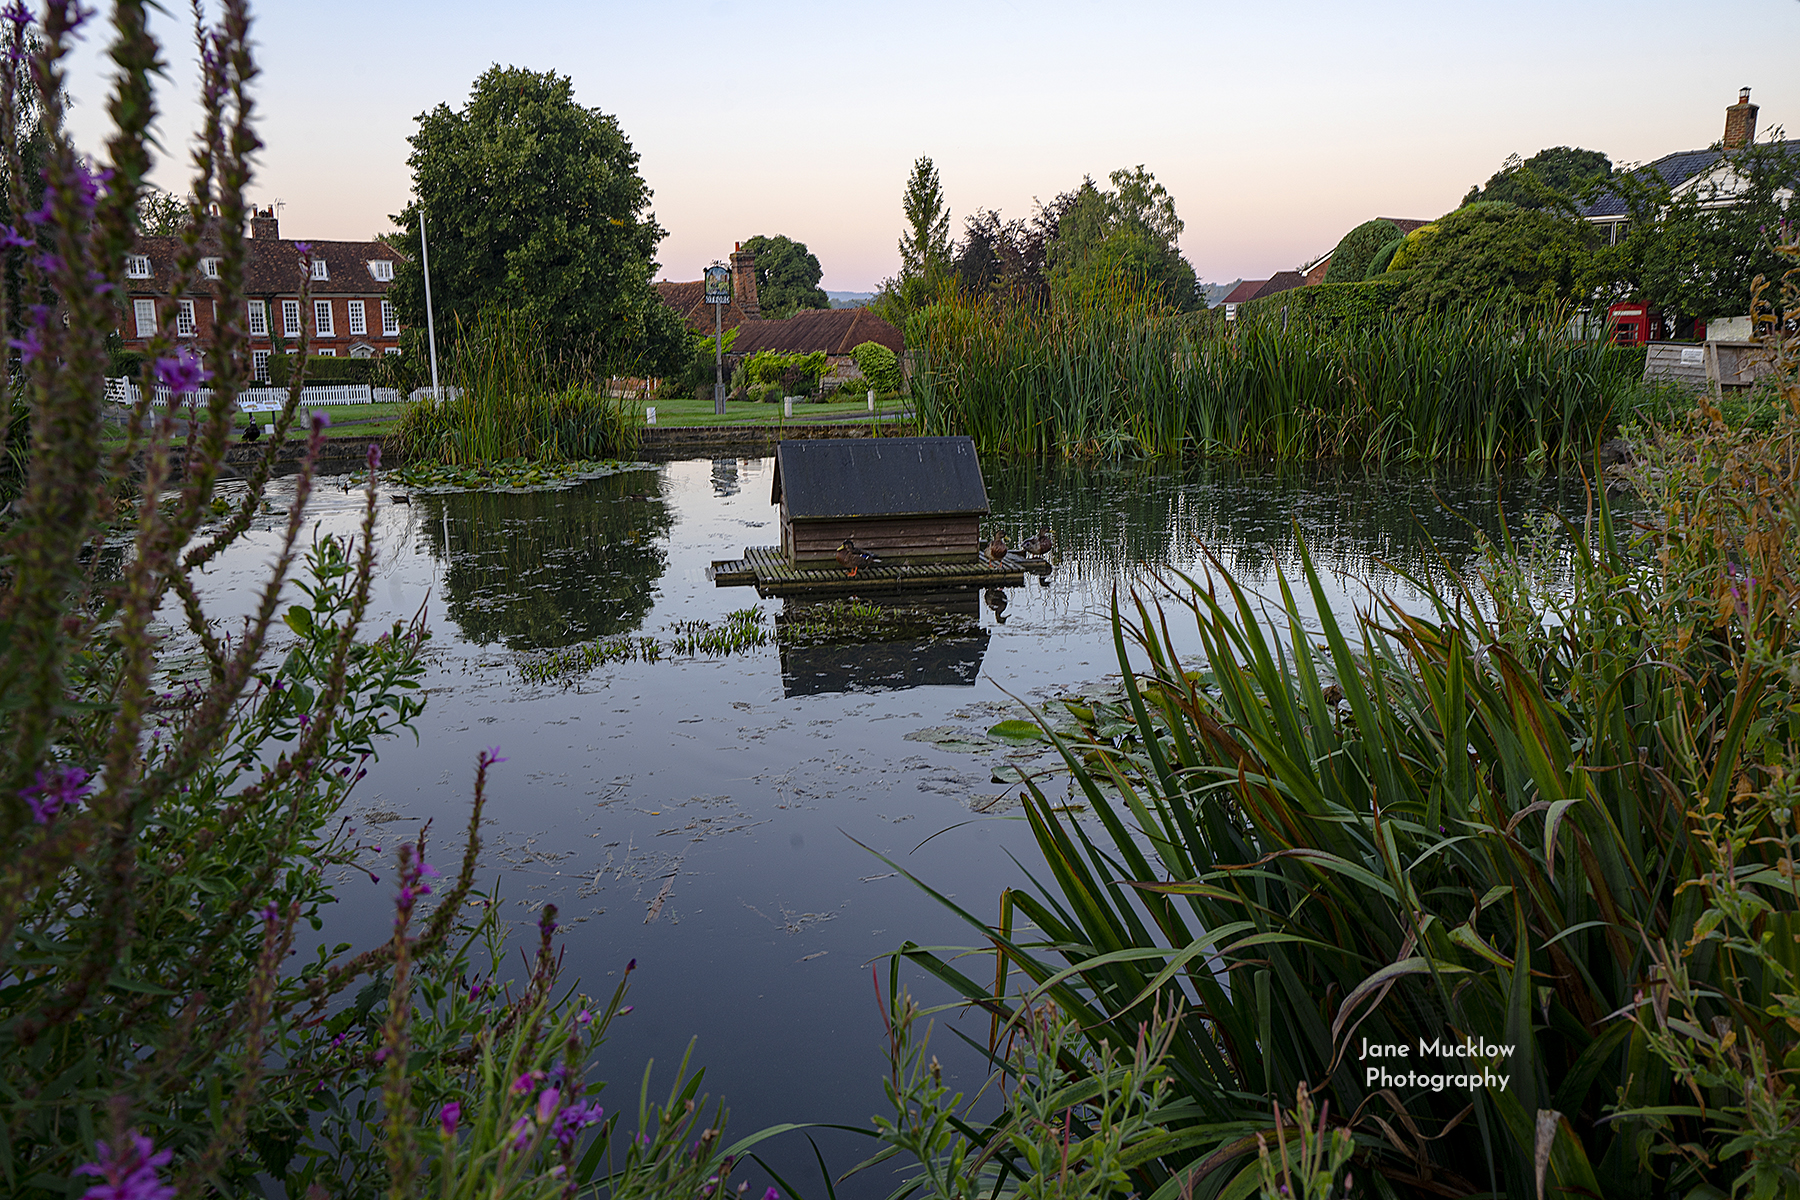 Photo of Otford pond at sunrise, by Jane Mucklow